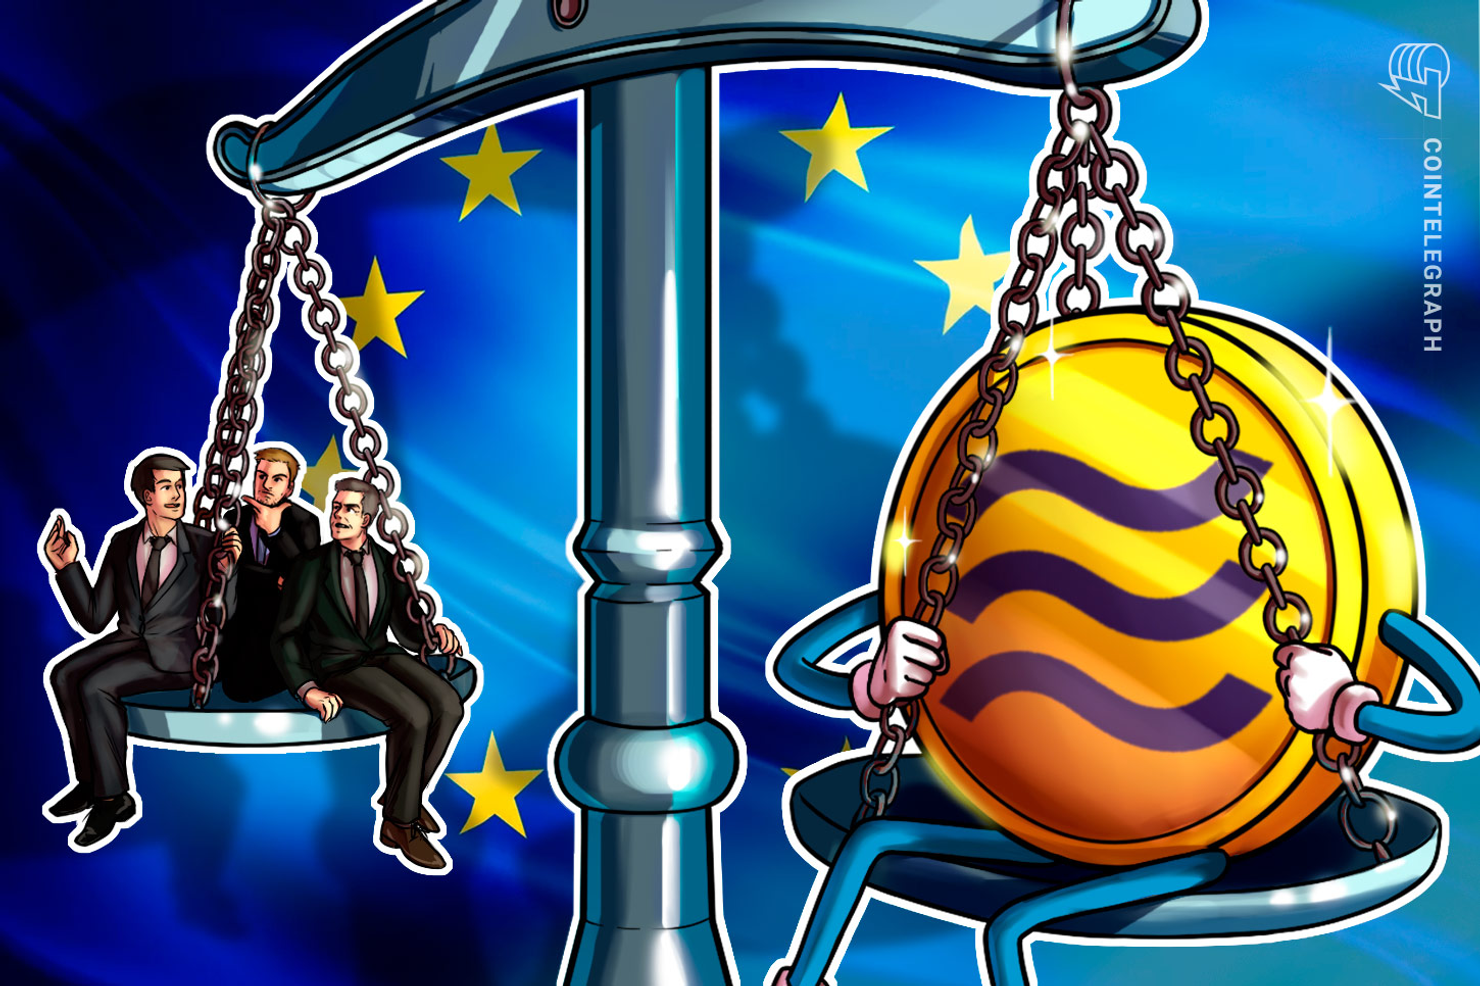 Five European Union Countries Team Up to Block Libra: Report